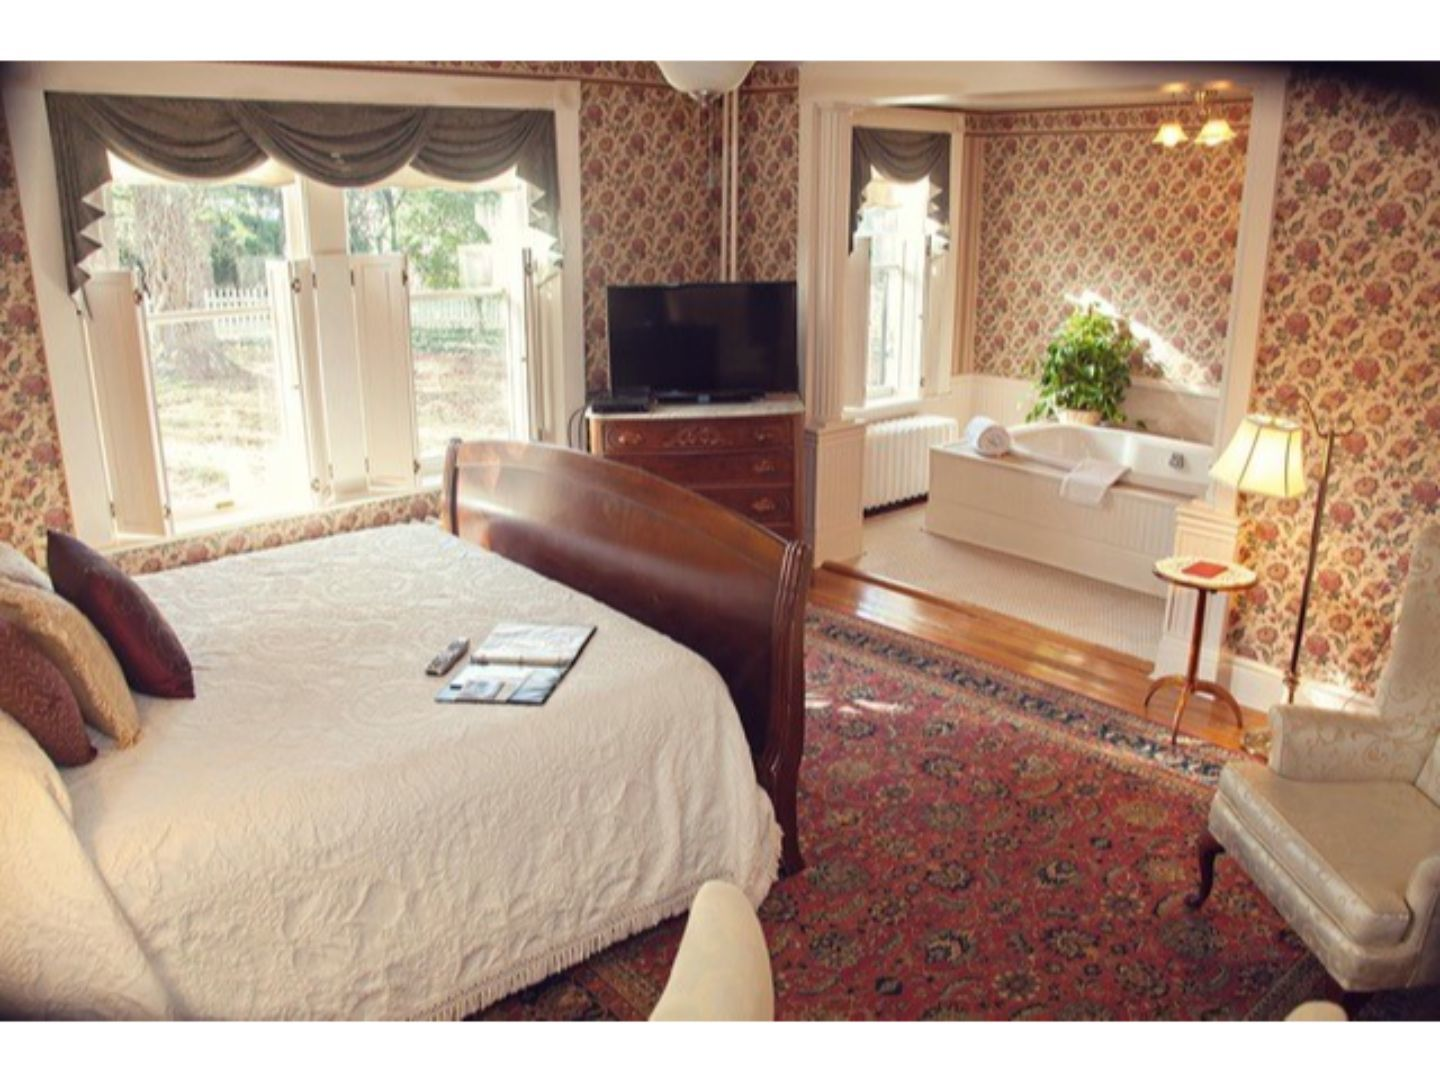 A bedroom with a bed and window in a room at The Carriage Inn Bed and Breakfast.